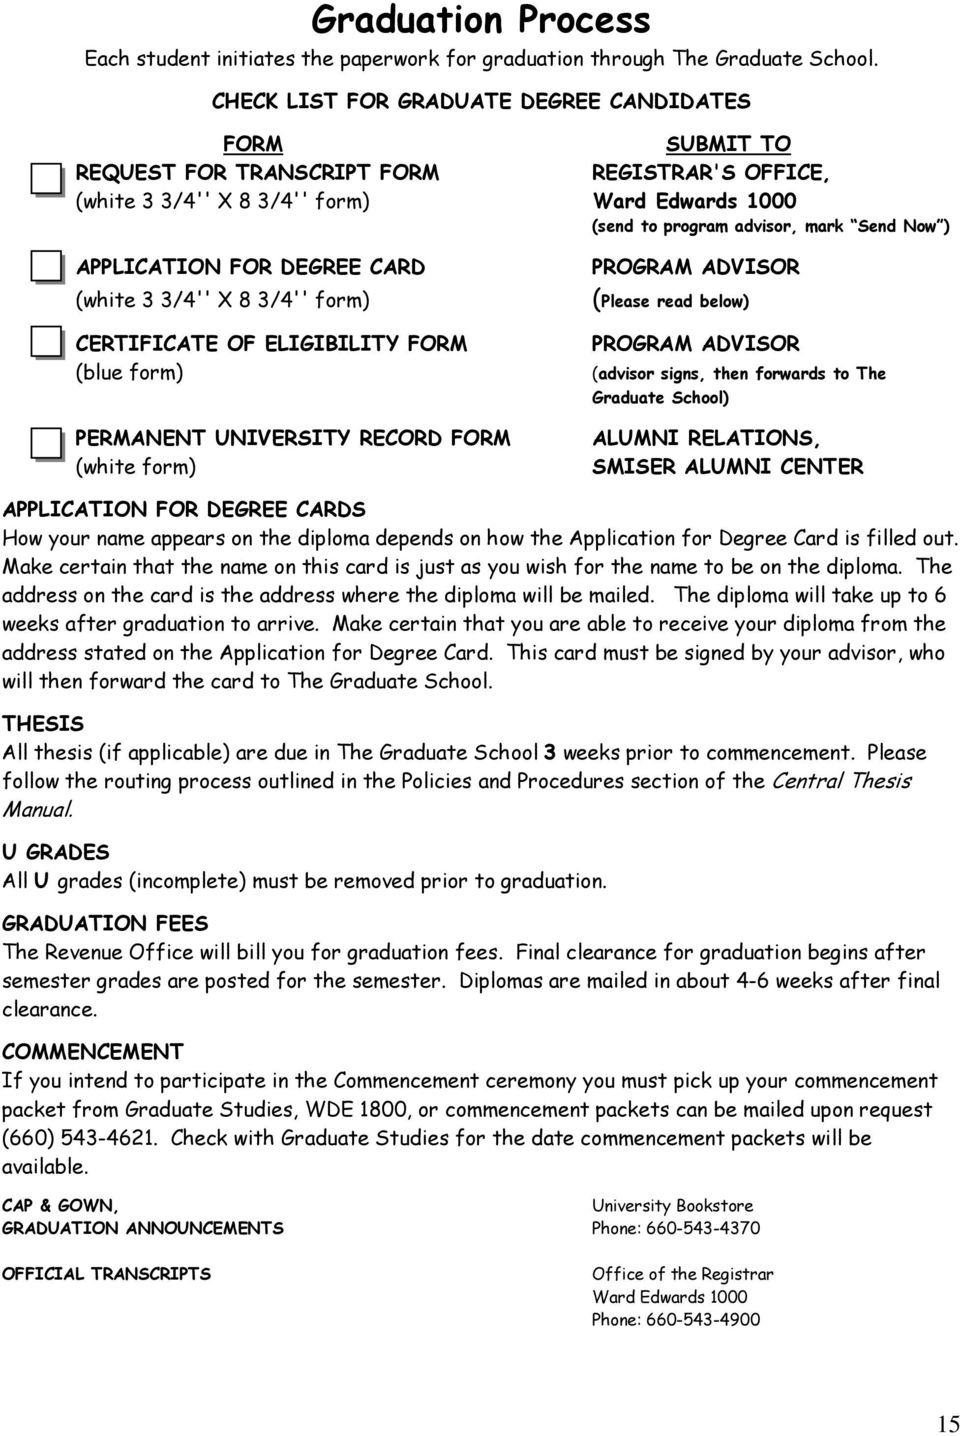 APPLICATION FOR DEGREE CARD (white 3 3/4'' X 8 3/4'' form) CERTIFICATE OF ELIGIBILITY FORM (blue form) PERMANENT UNIVERSITY RECORD FORM (white form) PROGRAM ADVISOR (Please read below) PROGRAM